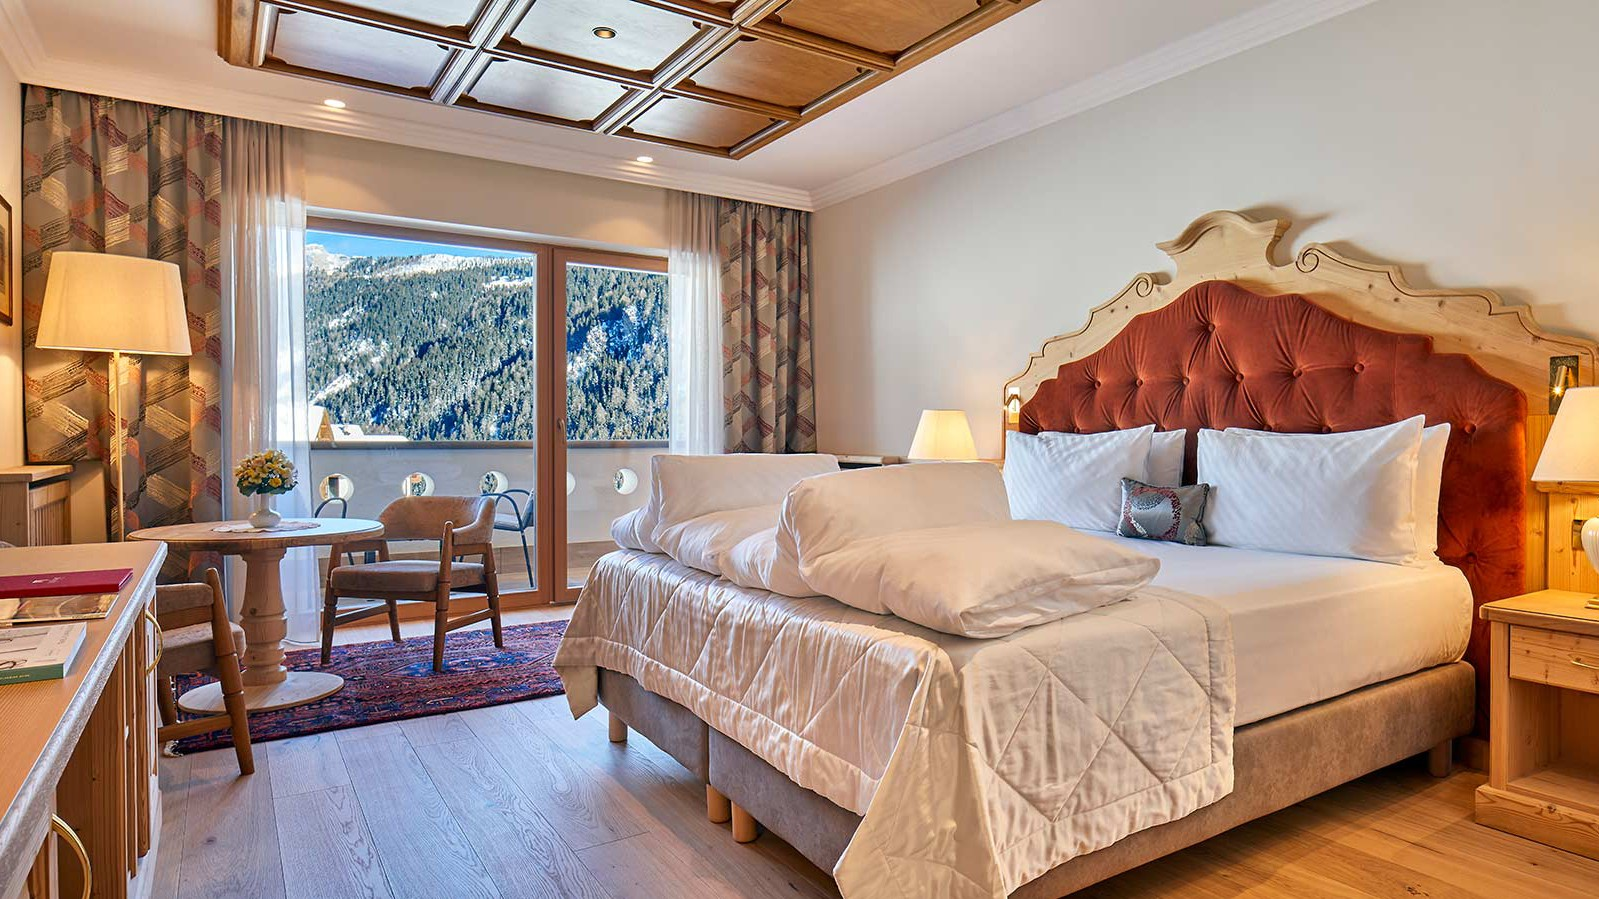 Hotel Sassongher, Corvara and Colfosco - Deluxe Room